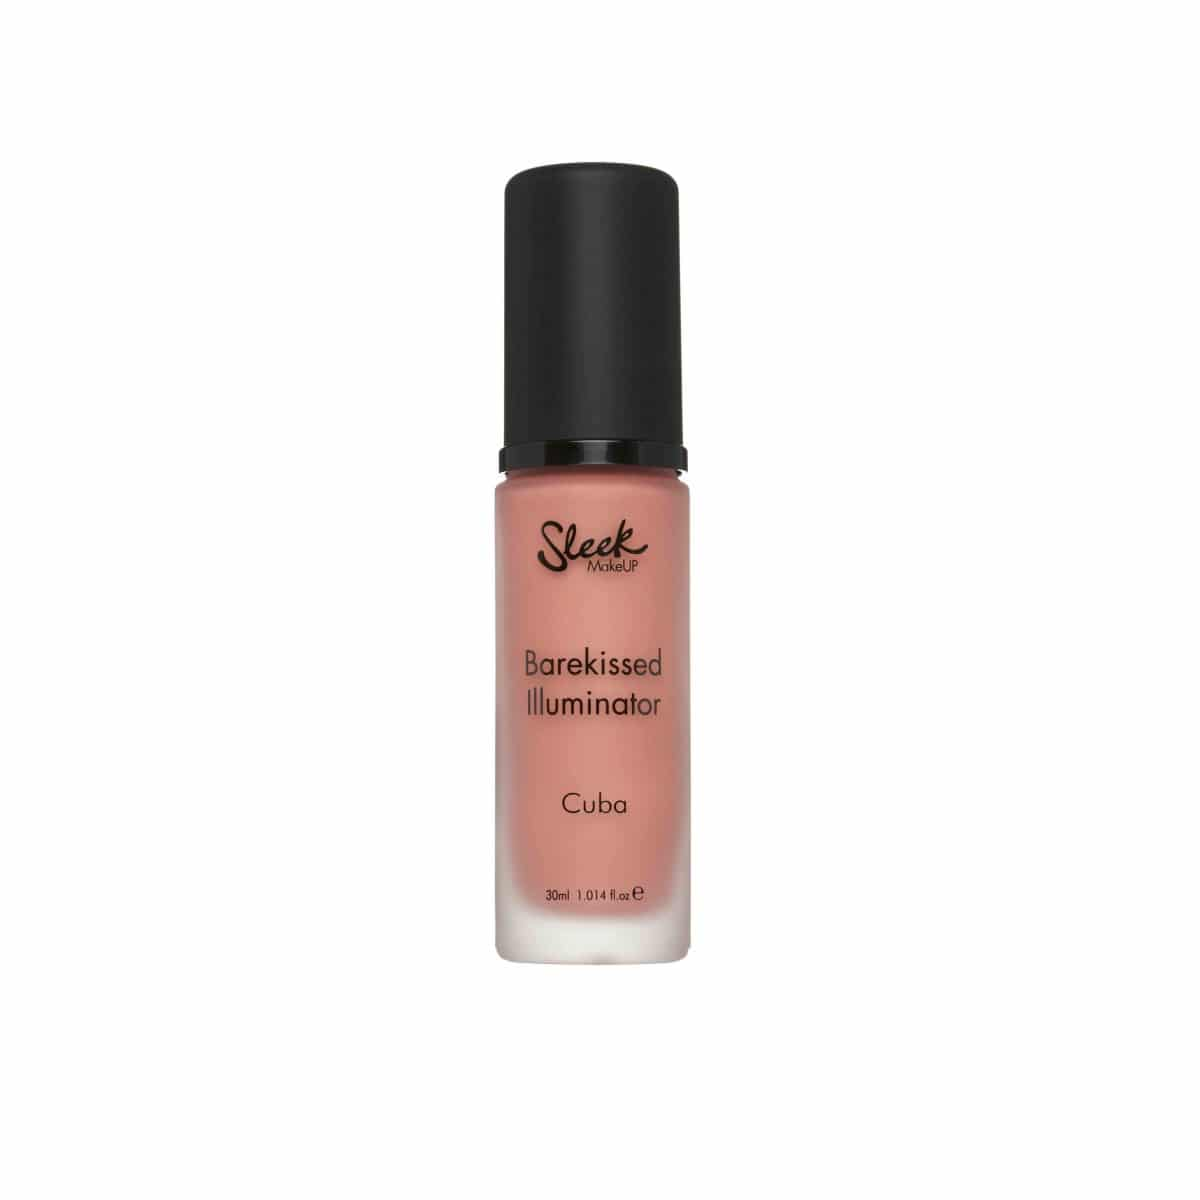 Sleek - Barekissed Illuminator